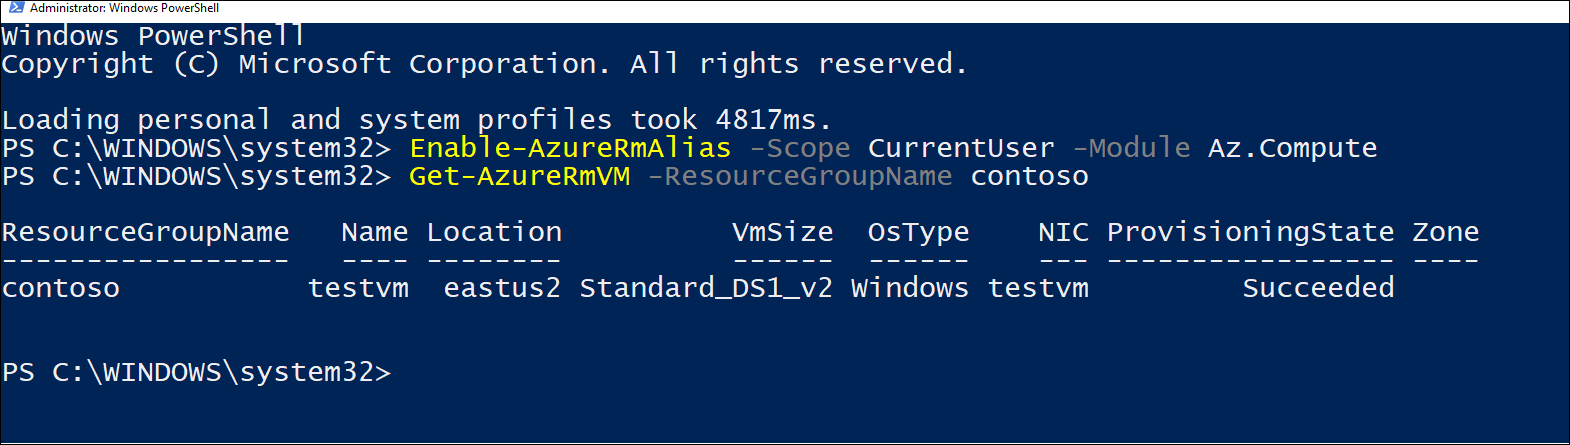 Screenshot of PowerShell session where Enable-AzureRm cmdlet was run.